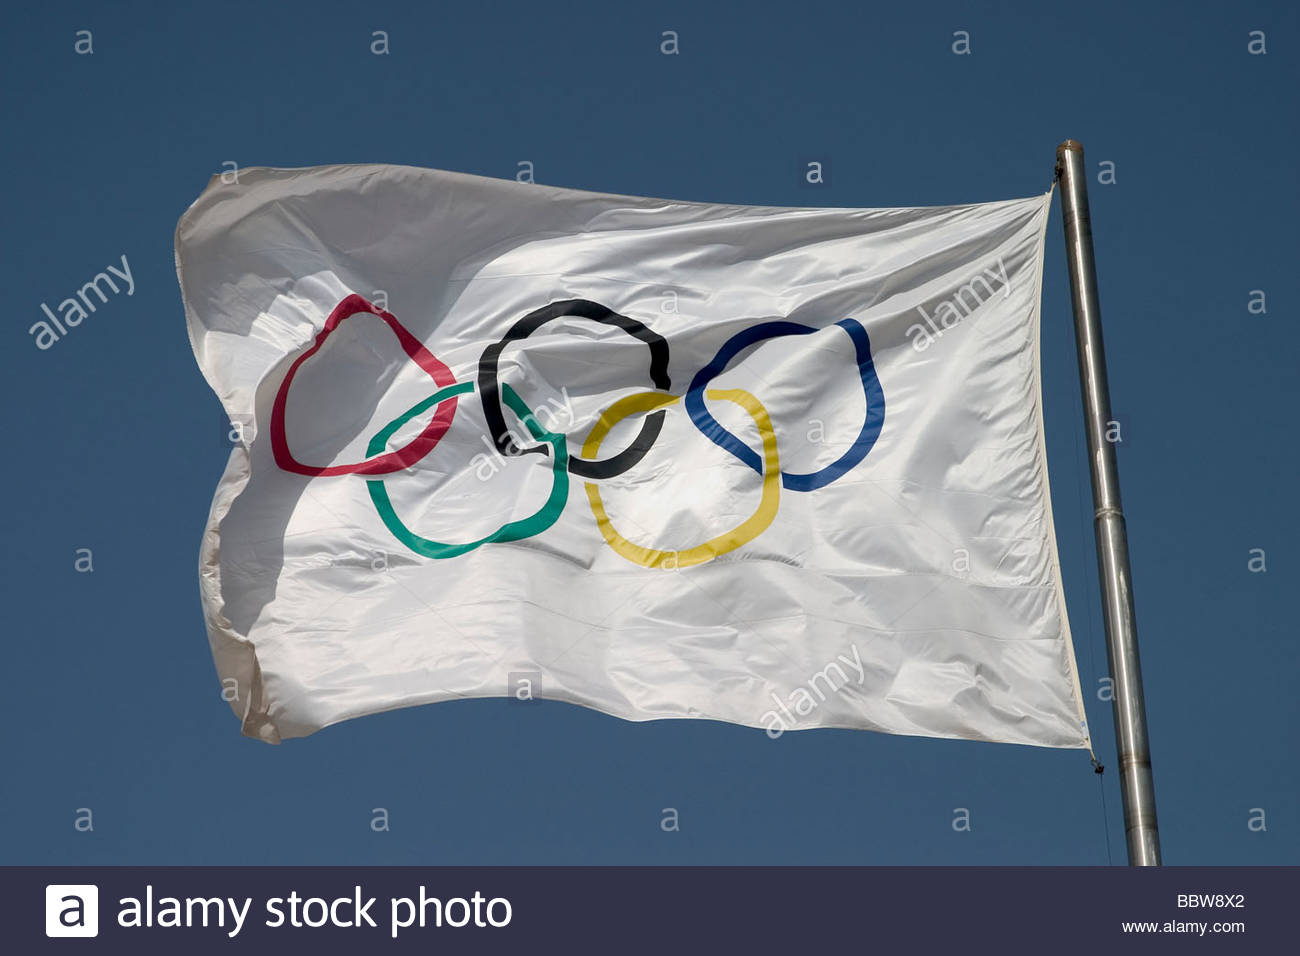 europe, greece, athens, stadium, olimpic flag - Stock Image